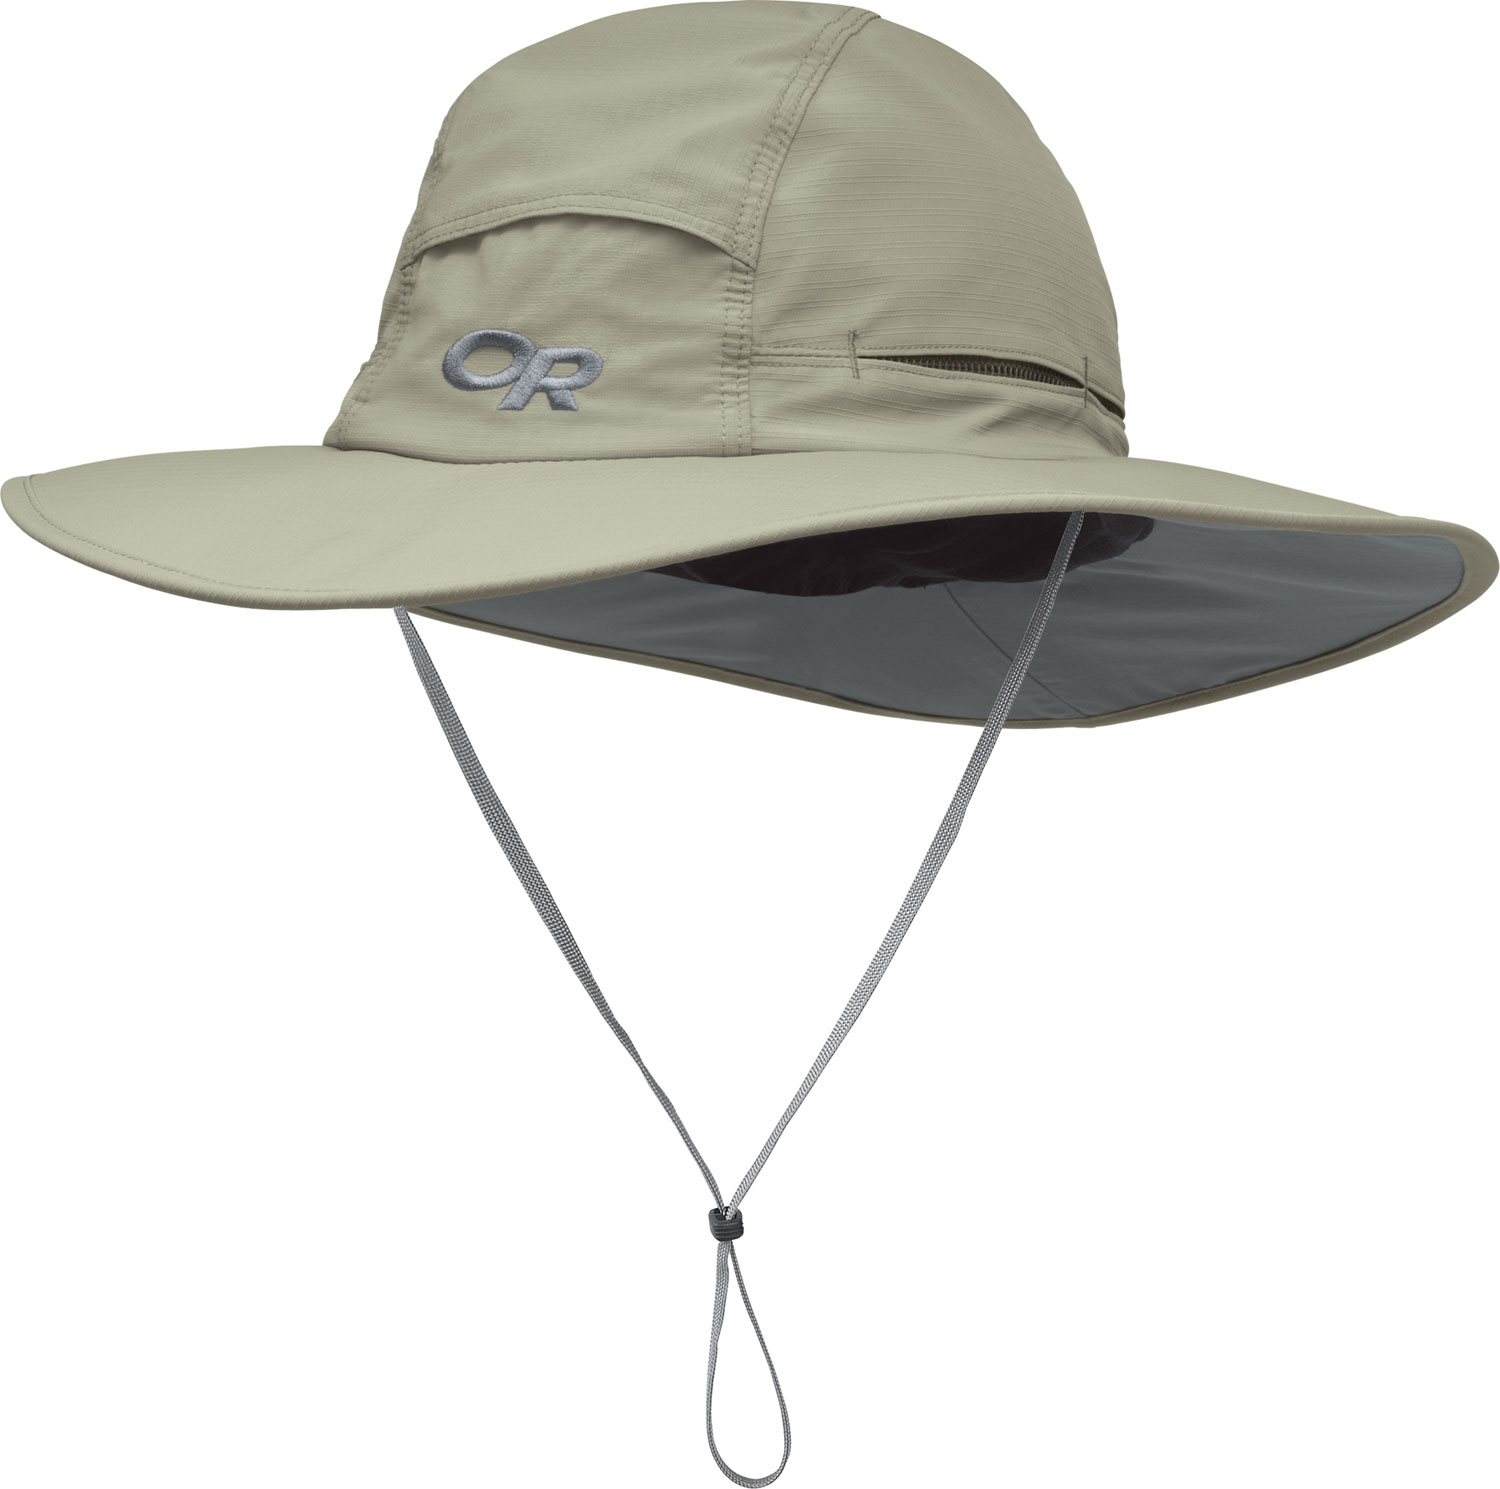 "Key Features of the Outdoor Research Sombroilet Sun Hat: SolarShield construction Ripstop nylon/polyester blend; UPF 50+ Foam-stiffened brim ? oats Flexible, circumferential piping along brim for wind resistance Mesh-lined crown and TransAction headband Vents in crown for ventilation External drawcord adjustment Removable chin cord with cordlock Brim: 2 3/4""/ 7cm - $40.00"